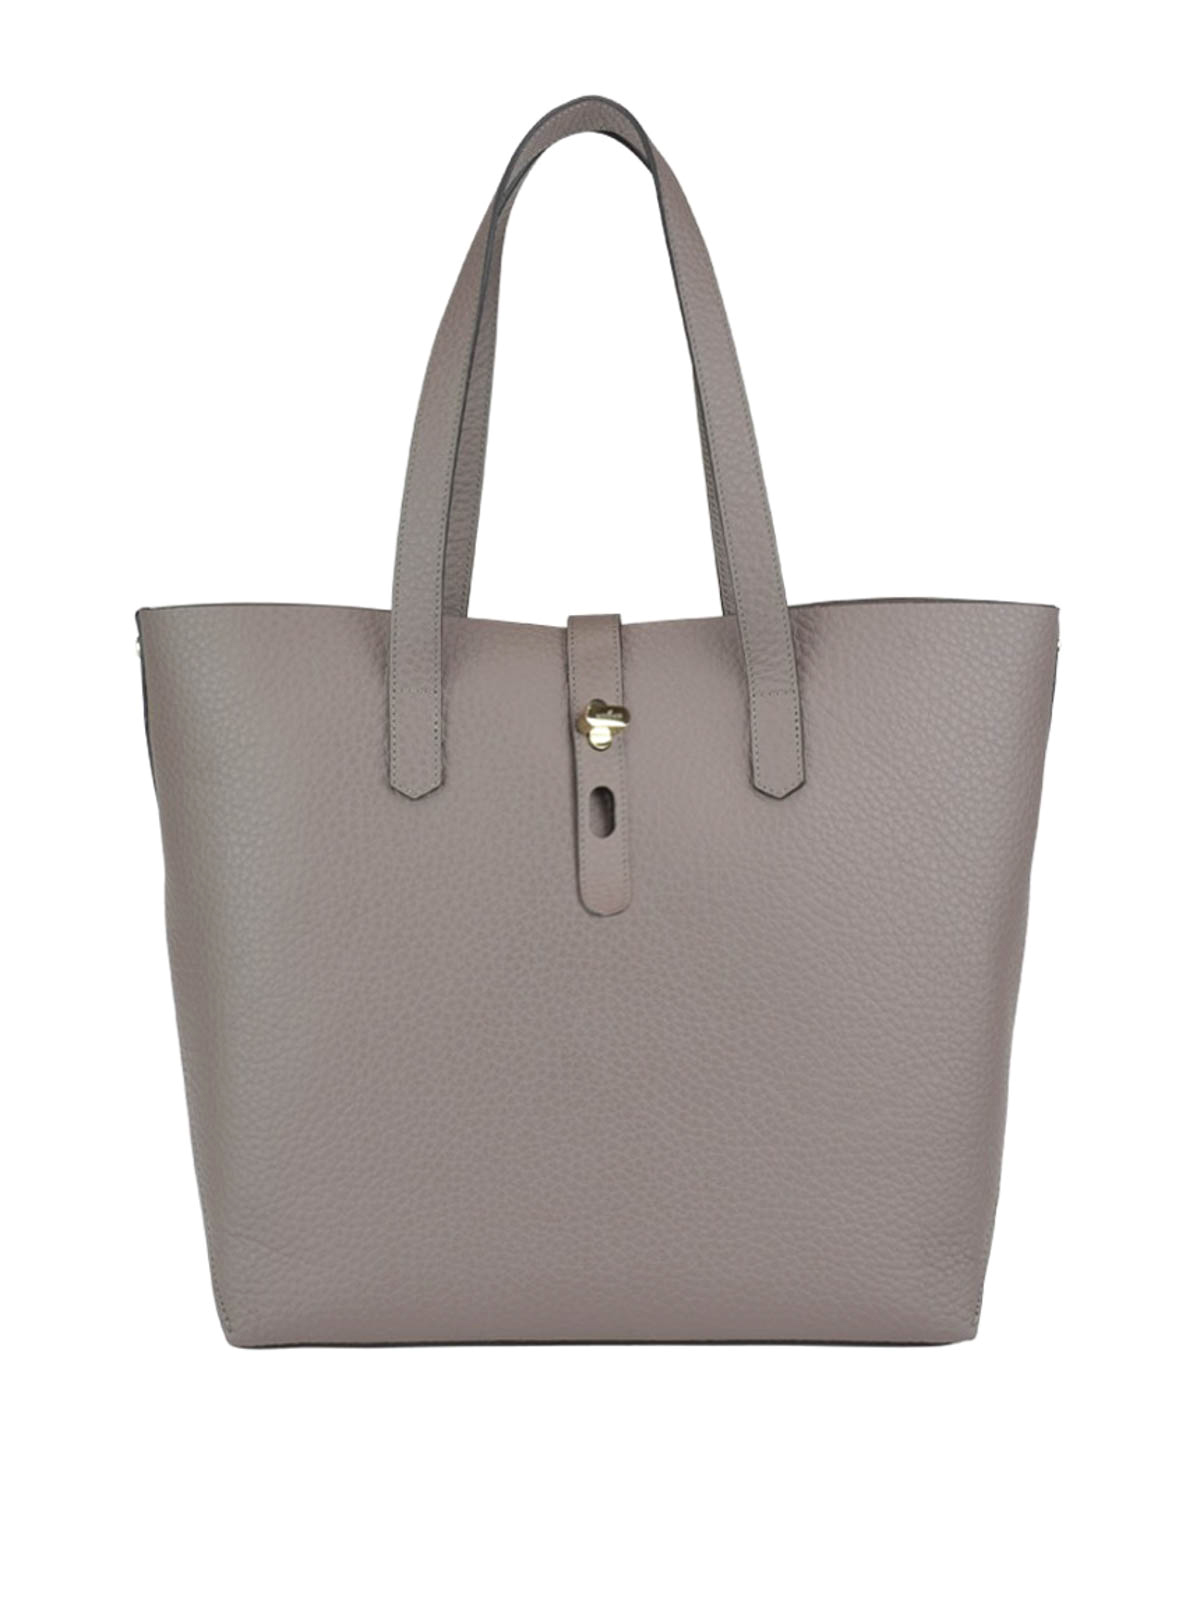 HOGAN HAMMERED LEATHER TOTE